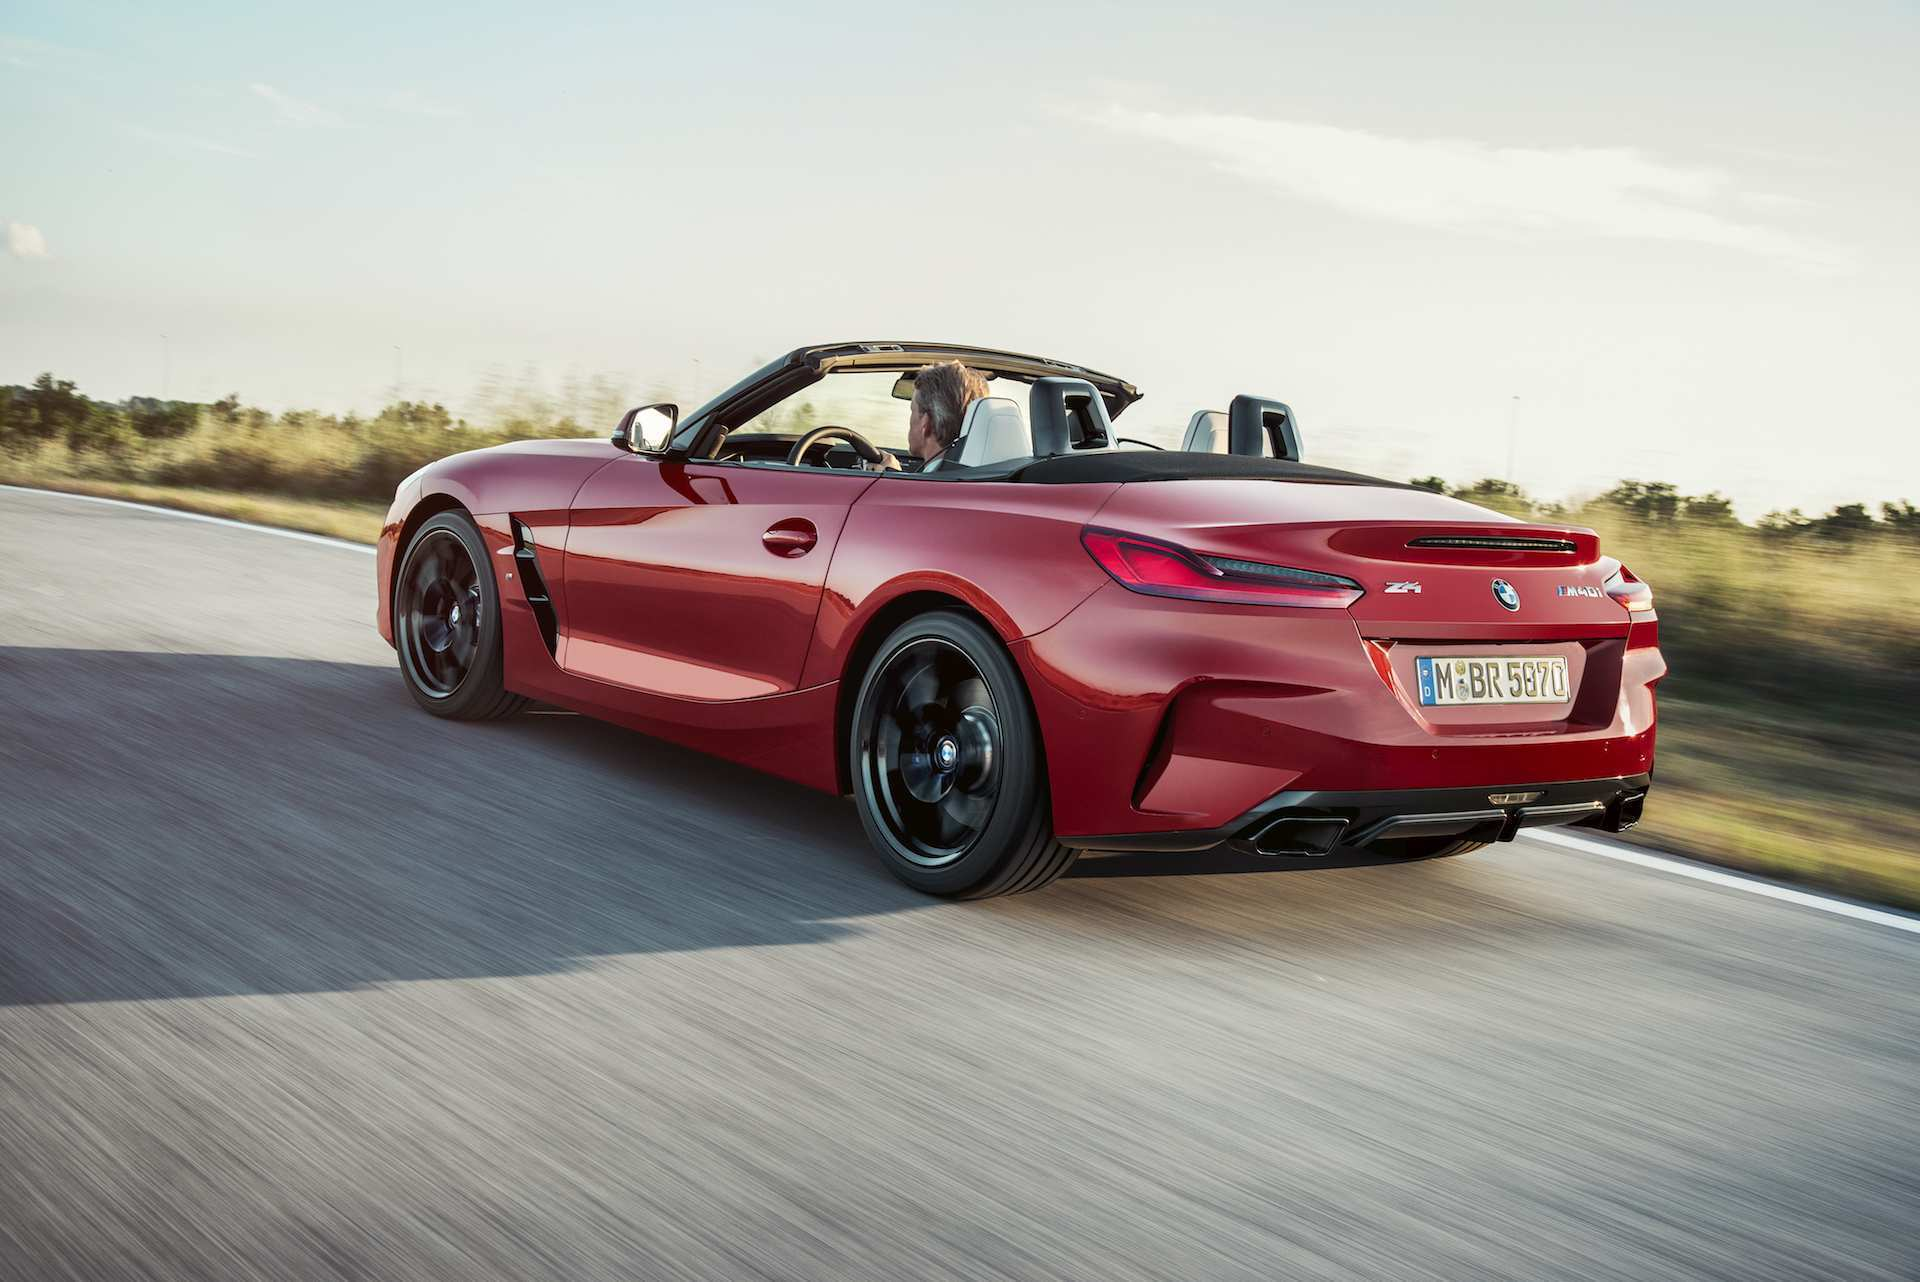 91 All New BMW Z4 2020 Wallpaper